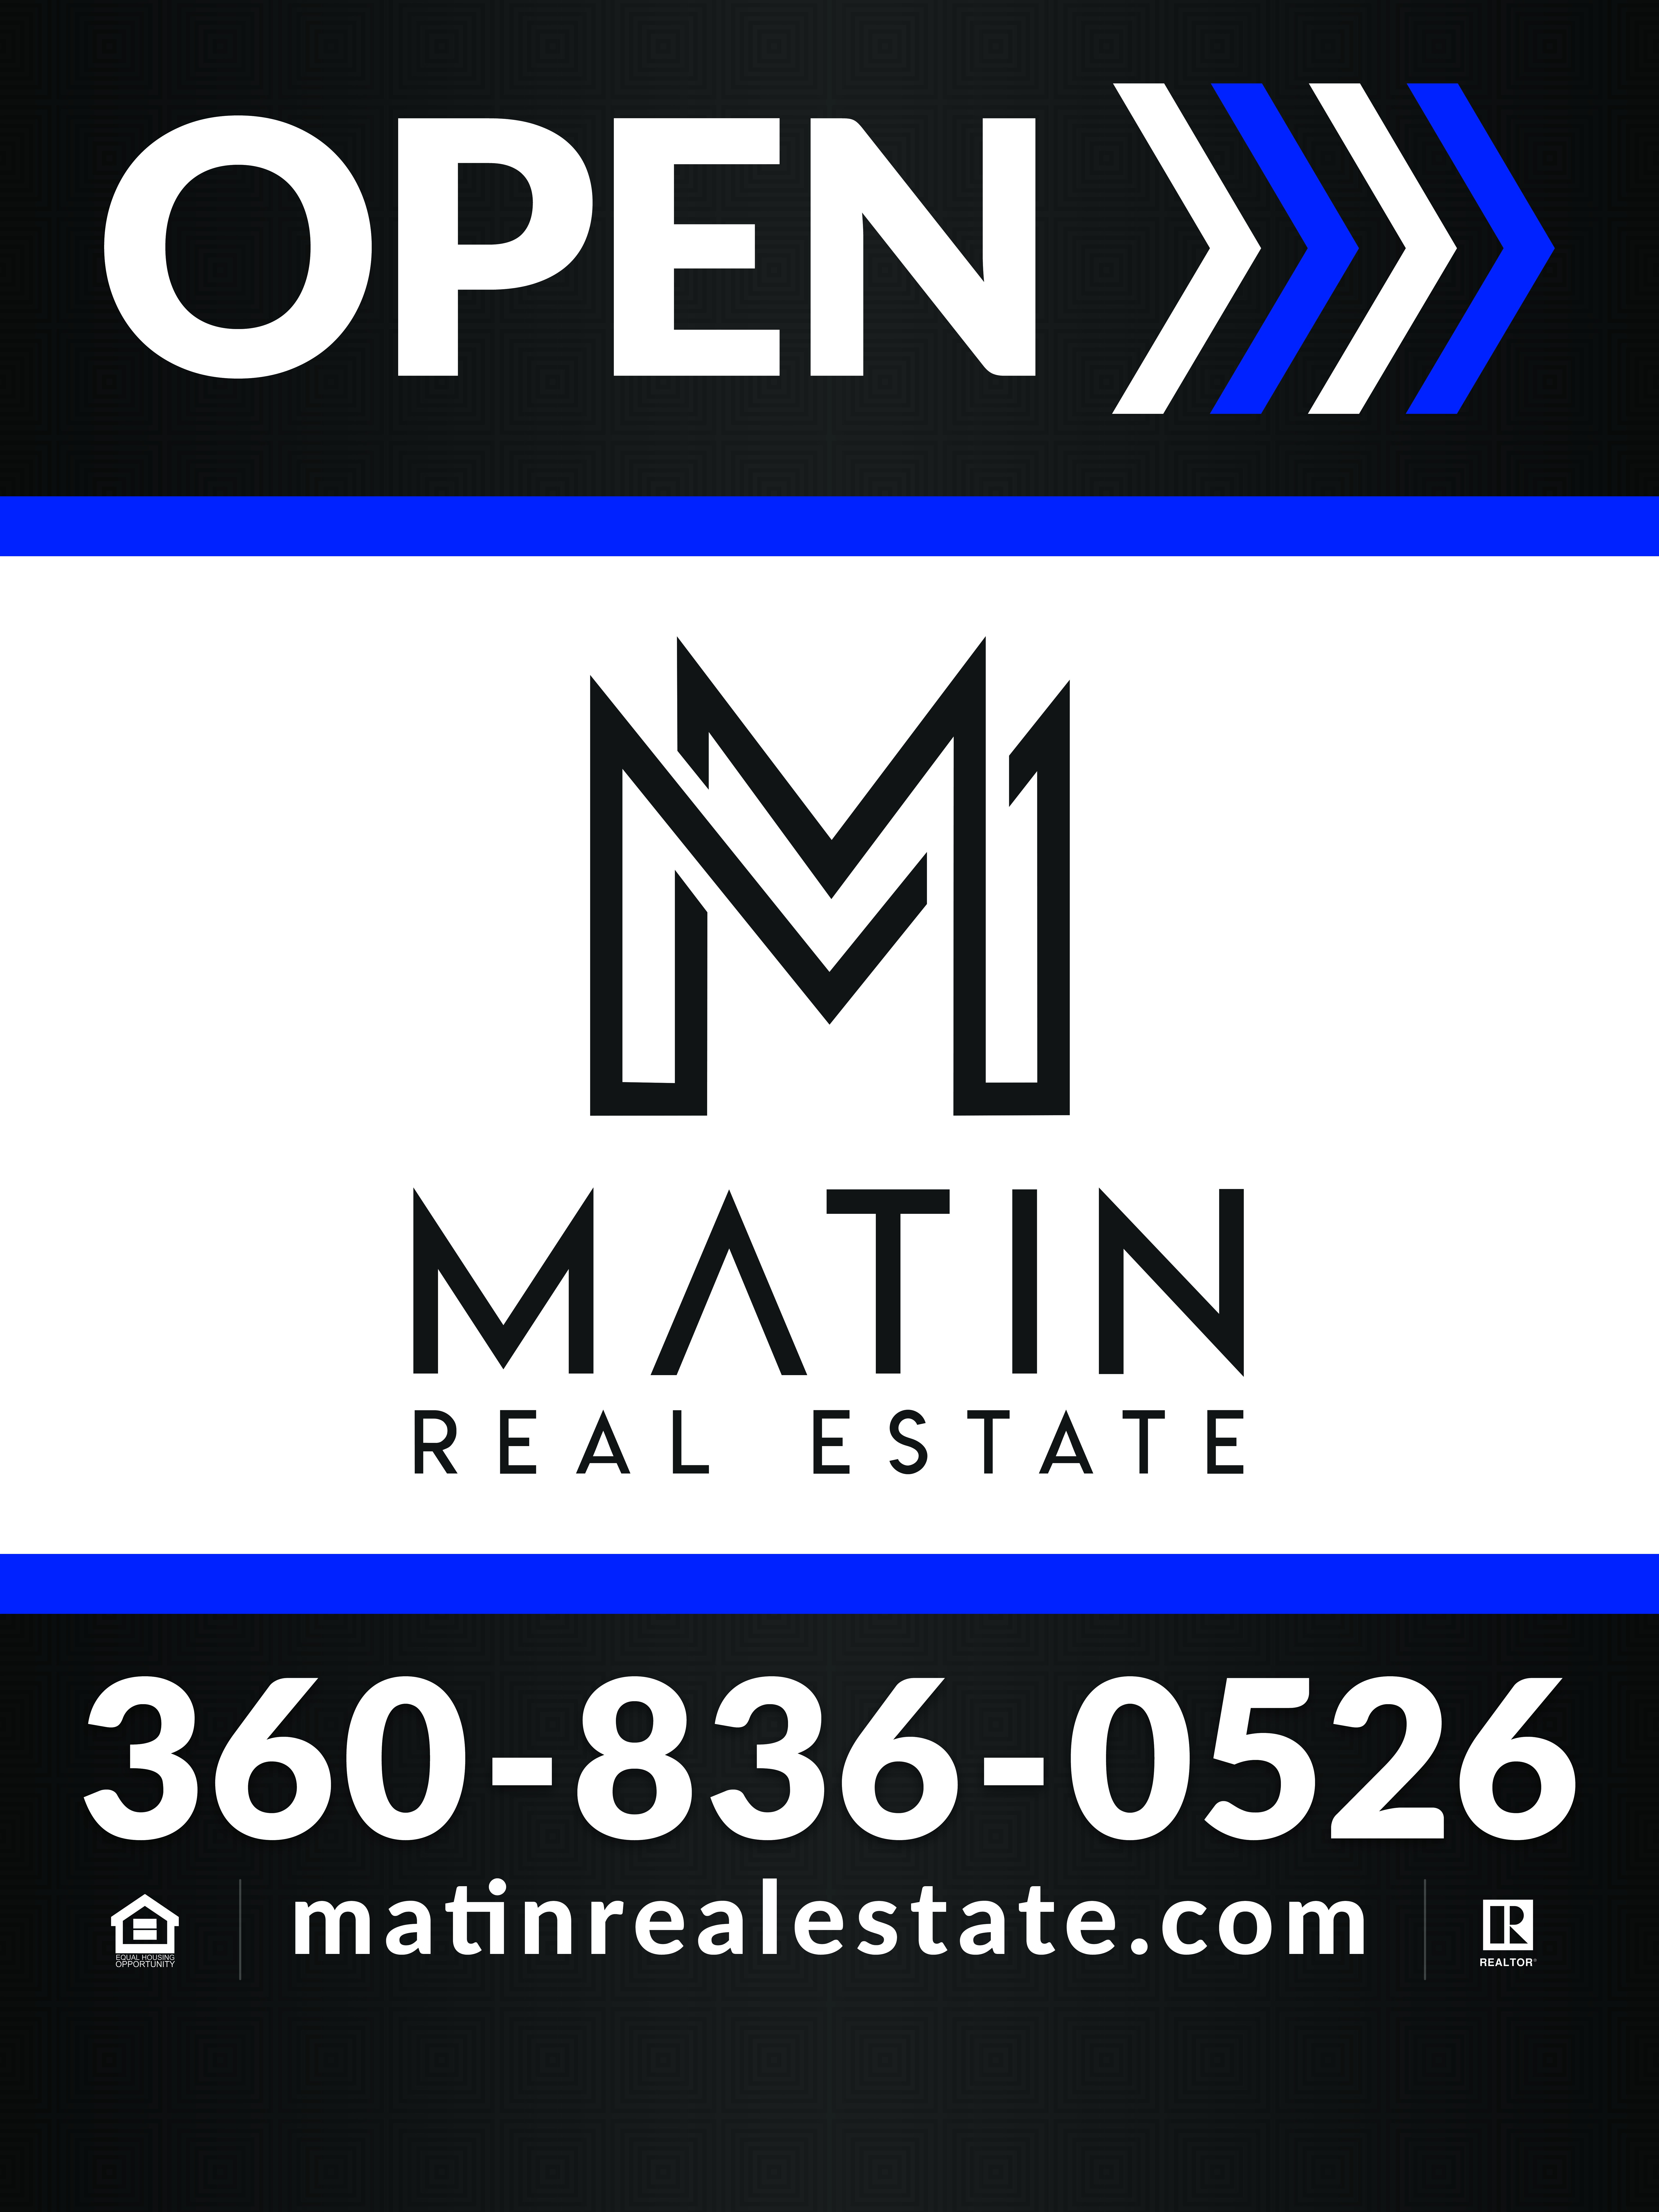 matin real estate open house signs